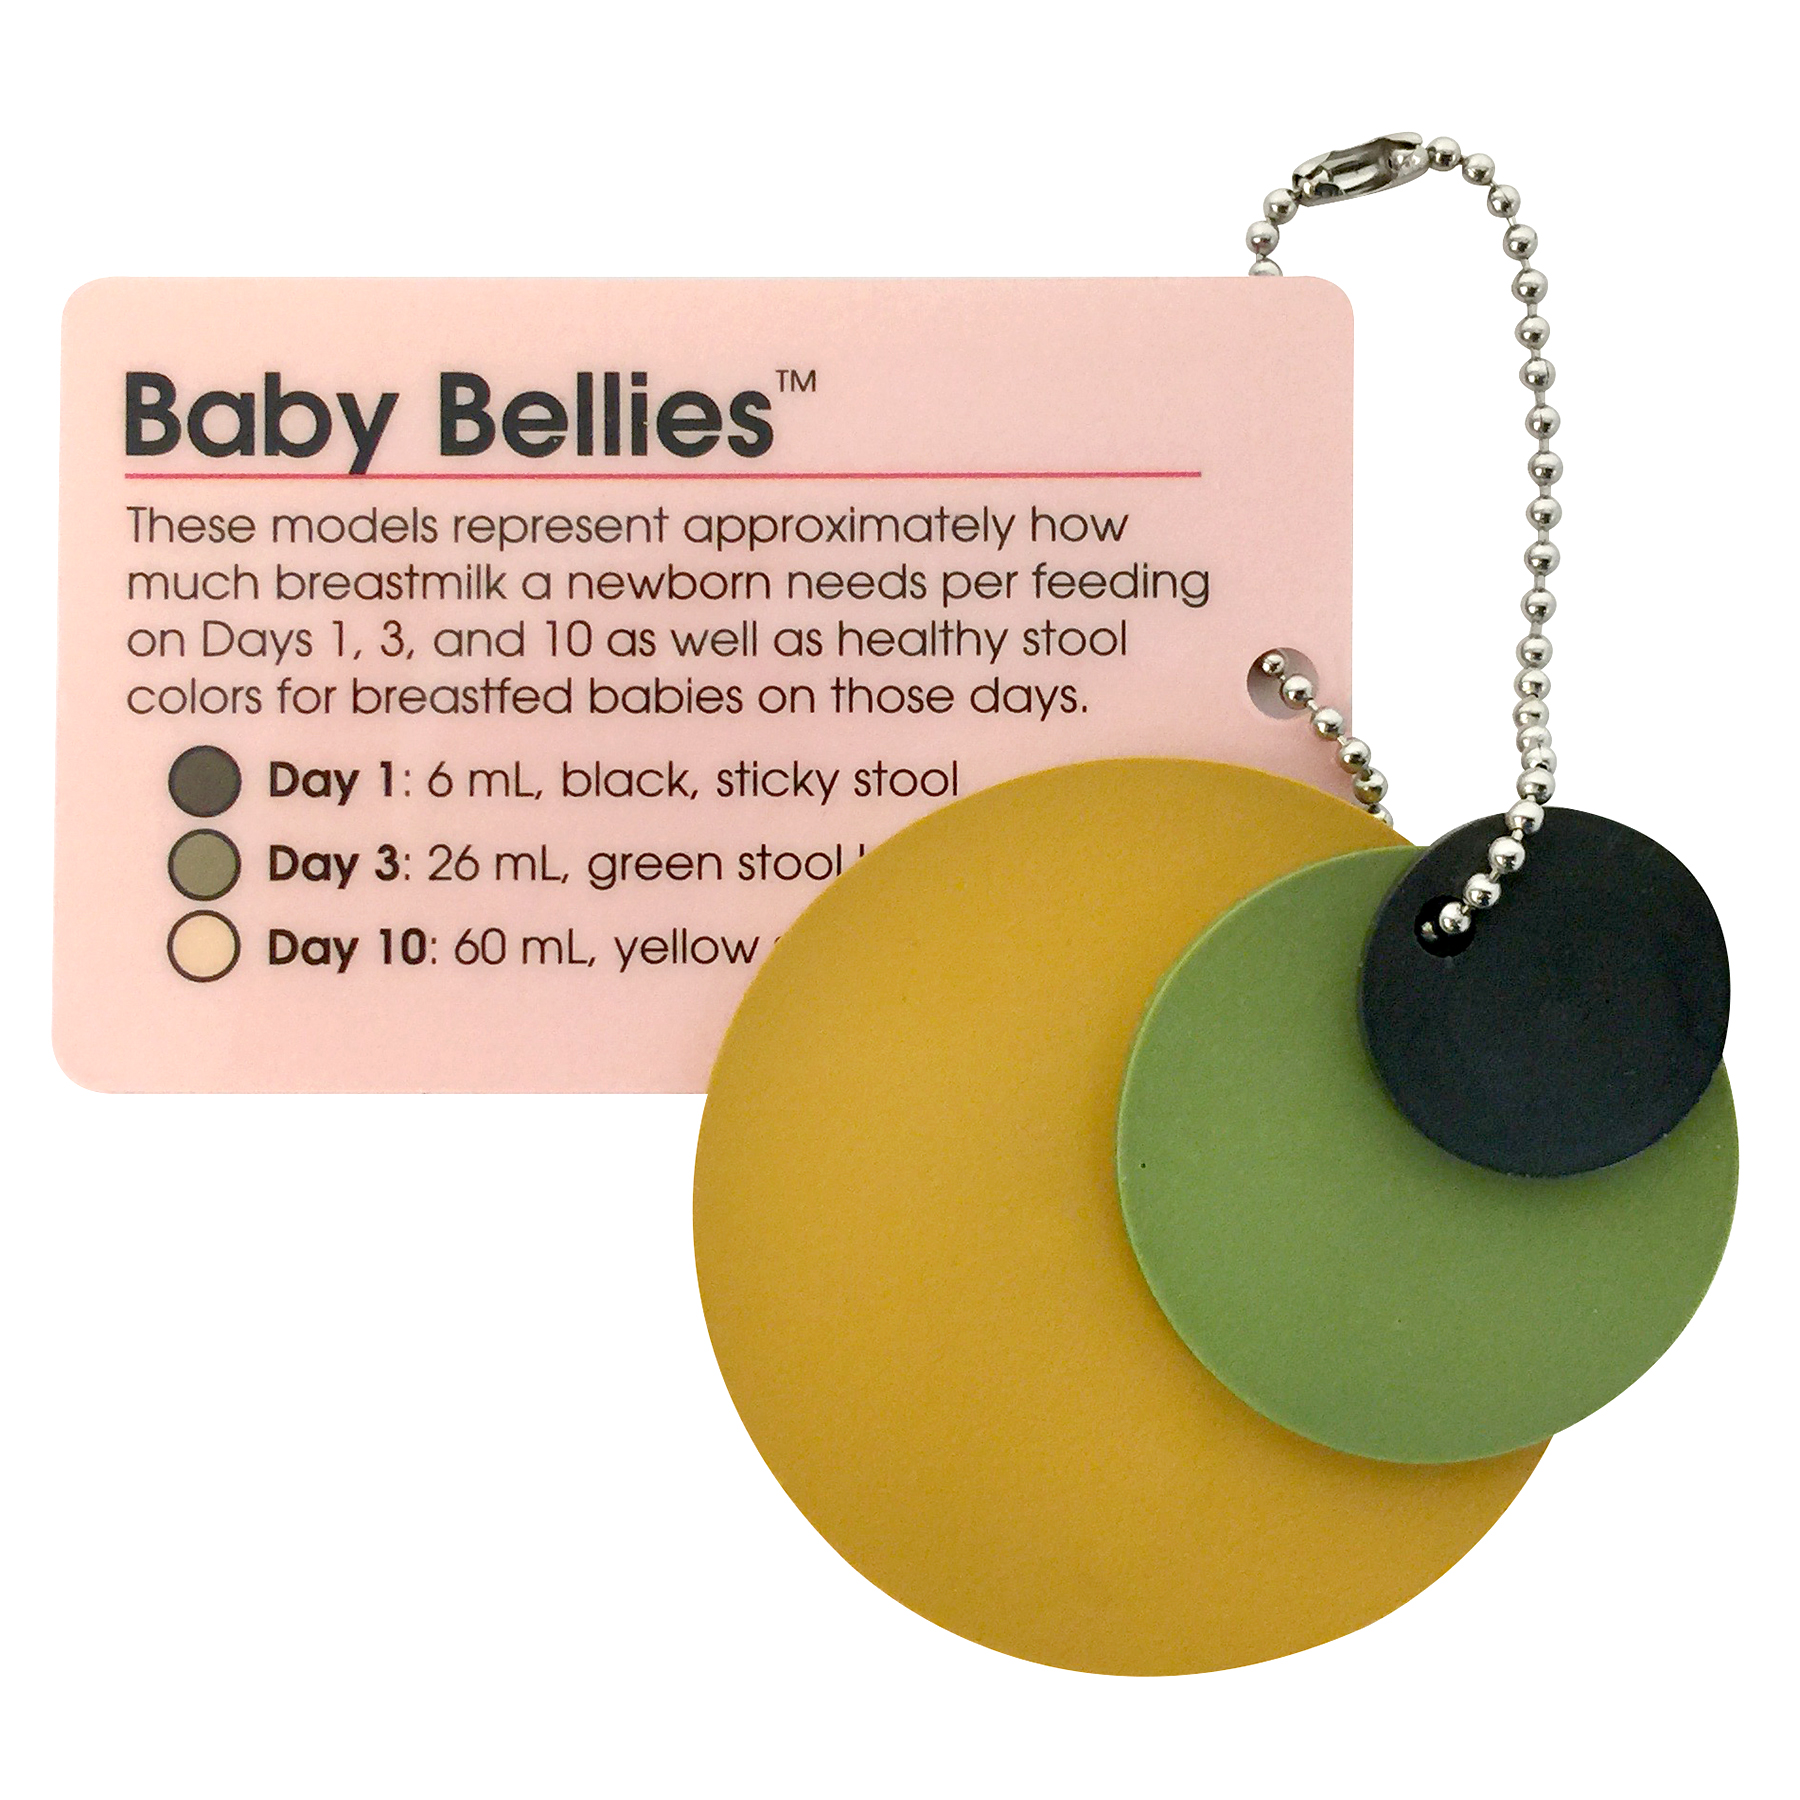 Baby Bellies Pocket Model Key Chain card & 3 sized colored disks represent size & color of stool, Childbirth Graphics 53526